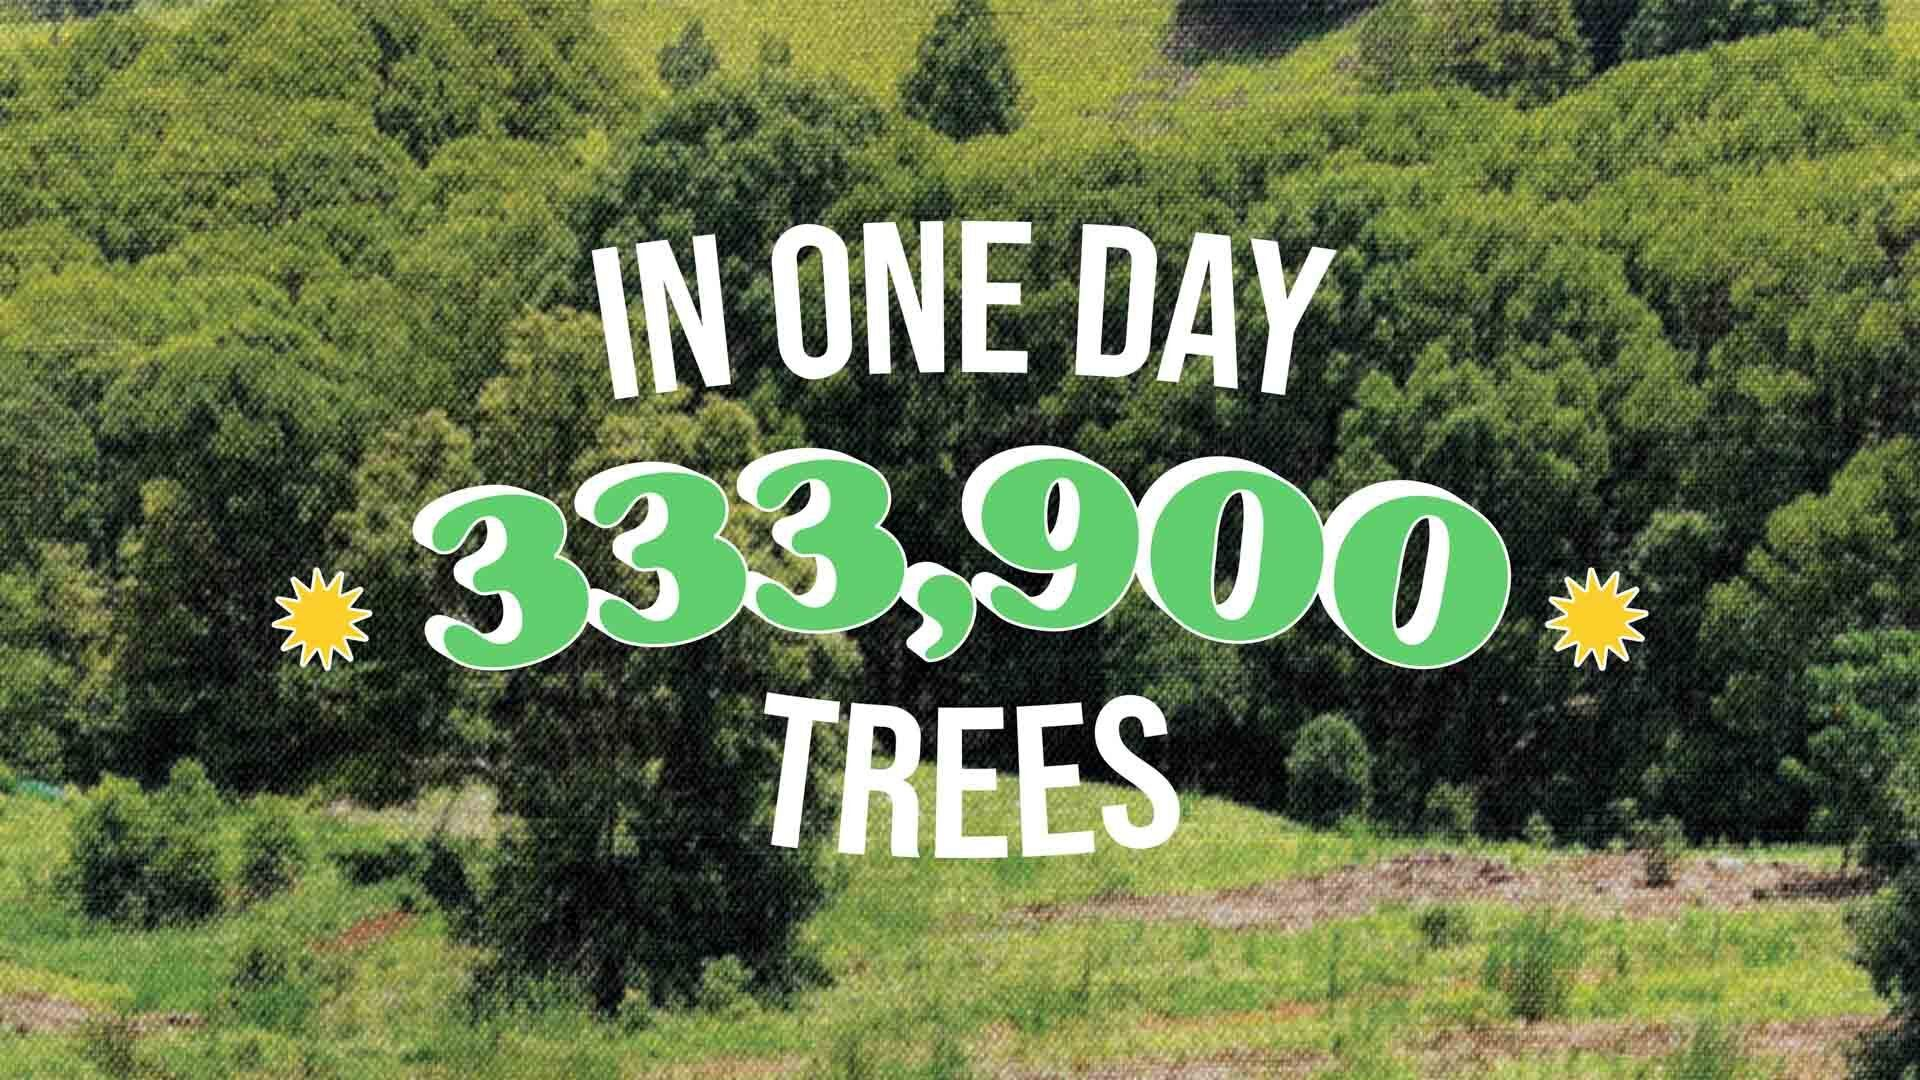 Thank you for fighting wildfires and restoring burnt forests!